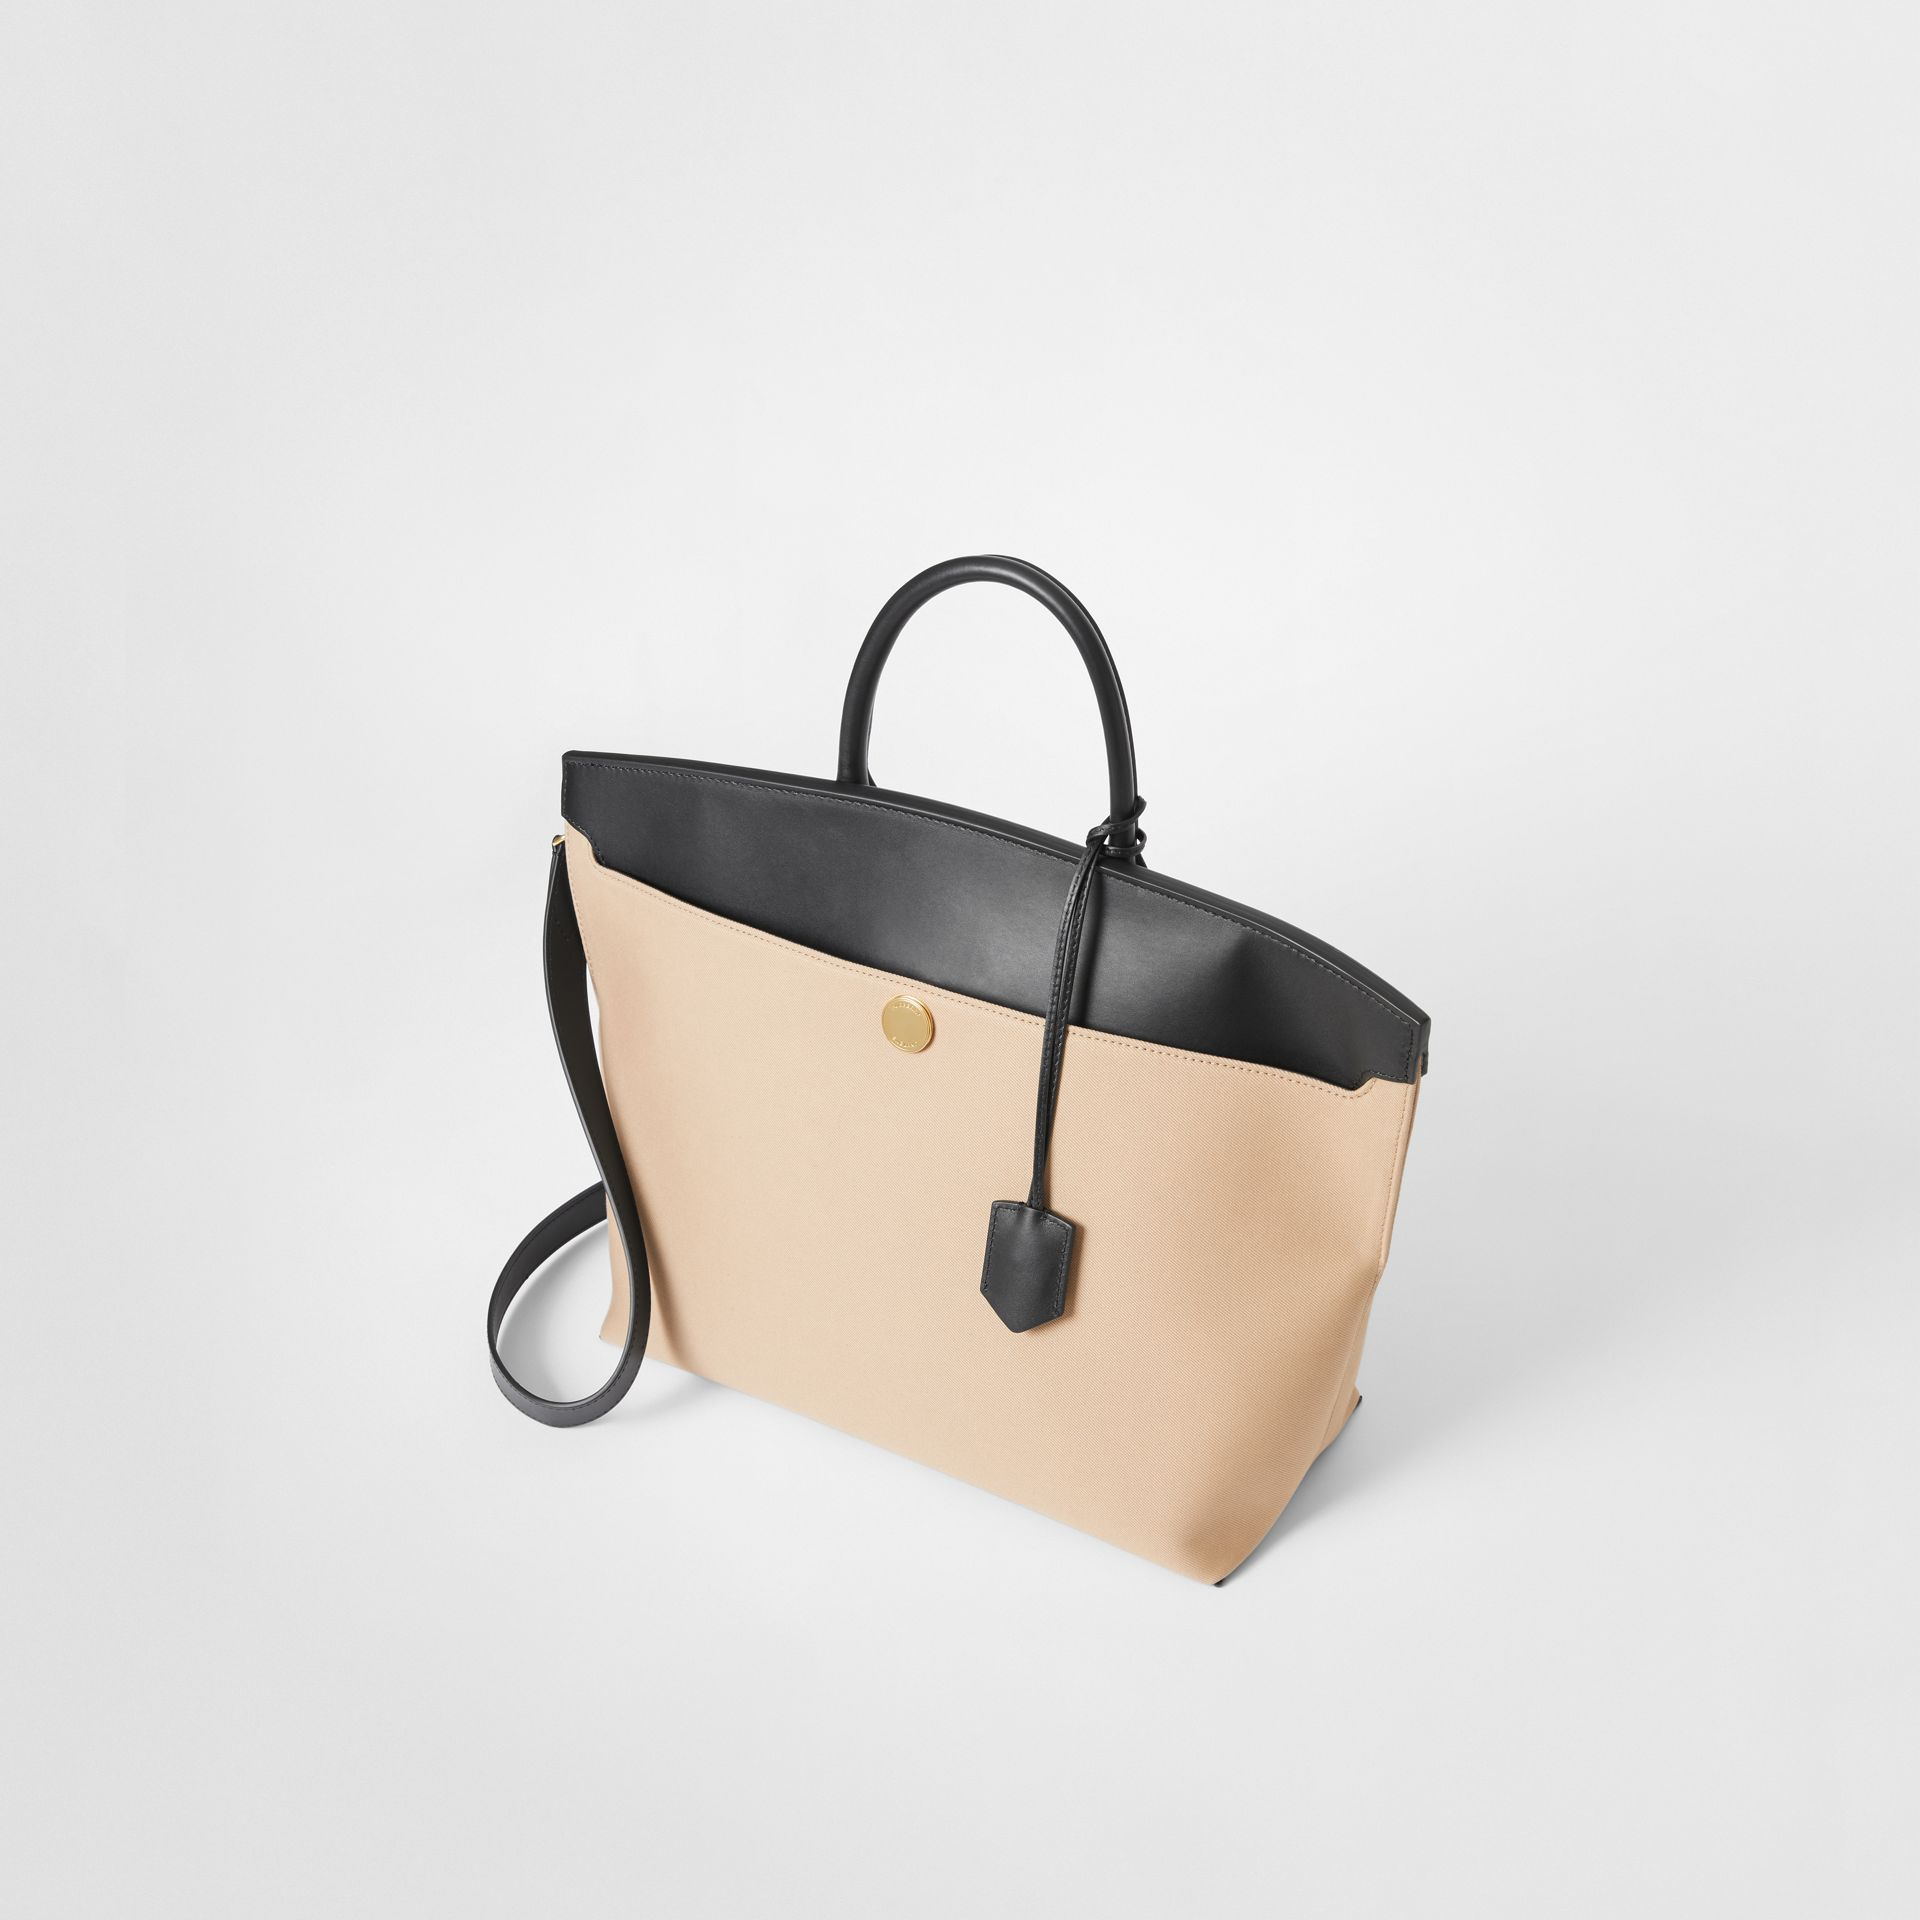 Cotton Canvas and Leather Society Top Handle Bag in Black/honey - Women | Burberry - gallery image 3